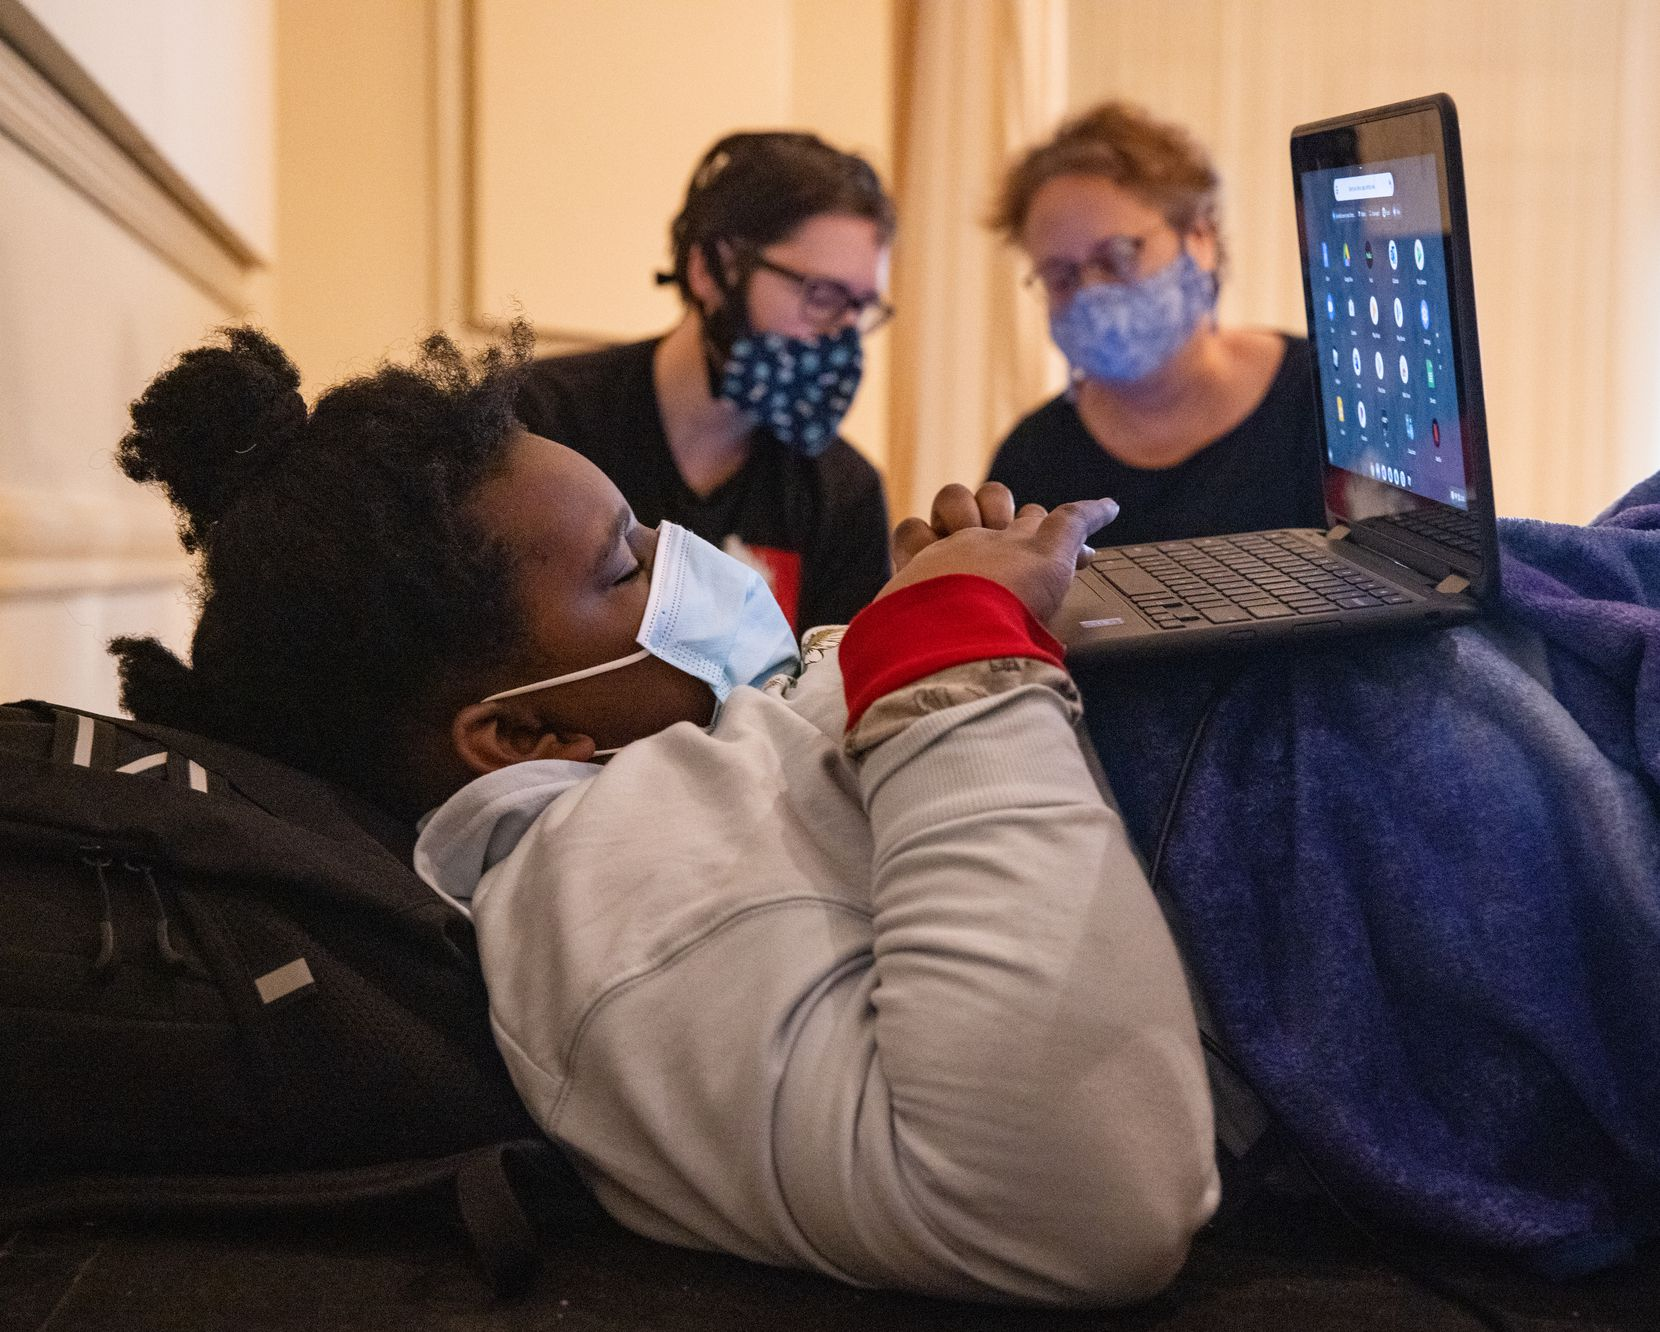 (From left) Madison Lewis, 10, uses a laptop as Thomas Stuteville and Karen Arnold chat as they seek refuge at the warming center located at Ruthe Jackson Center in Grand Prairie on Tuesday, Feb. 16, 2021. The family lost power at 12:16pm on Monday. (Juan Figueroa/ The Dallas Morning News)